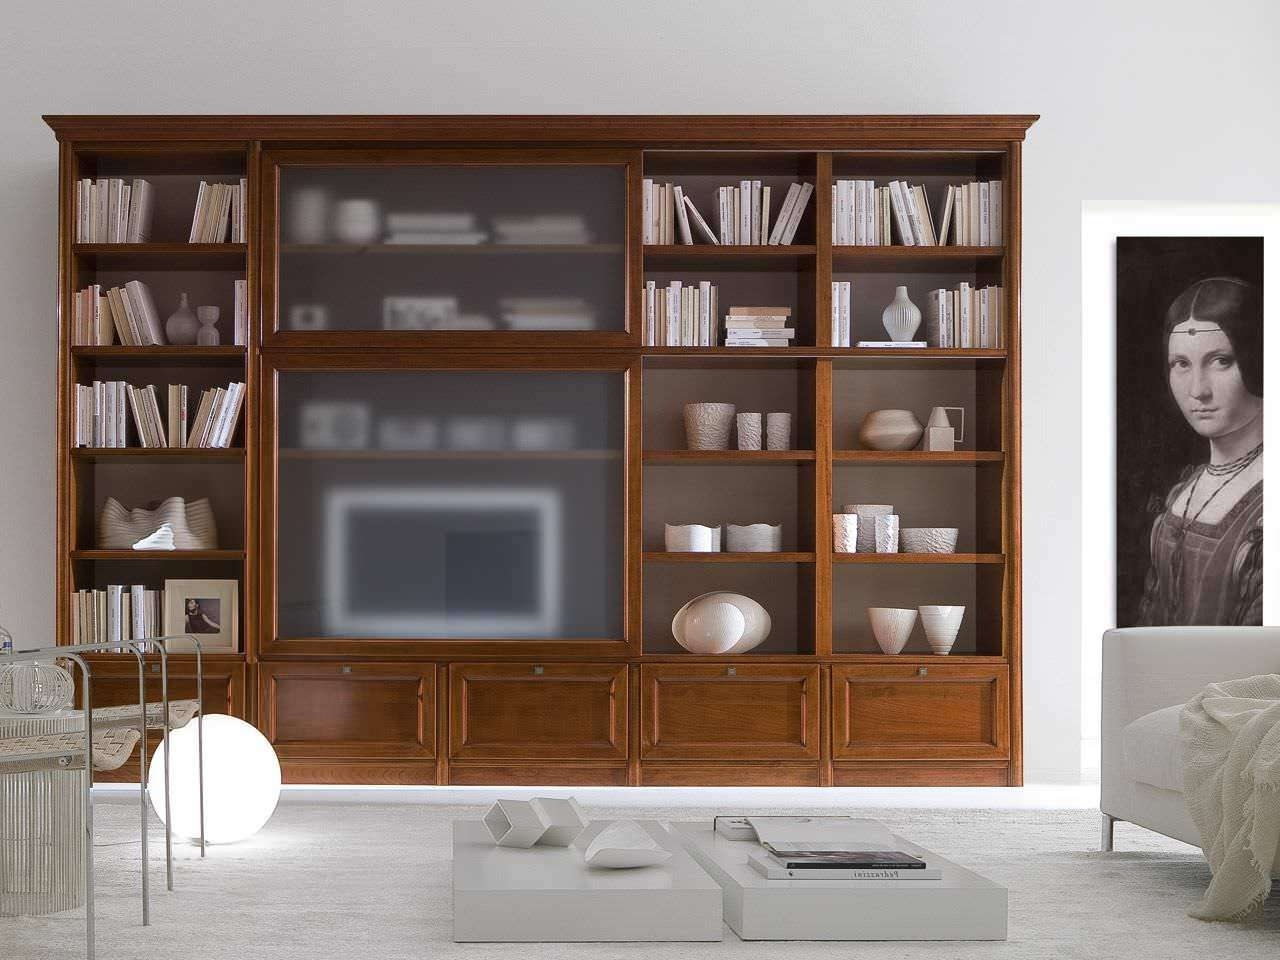 Traditional Tv Cabinet / Wooden – Livingpierangelo Sciuto Inside Traditional Tv Cabinets (View 13 of 20)